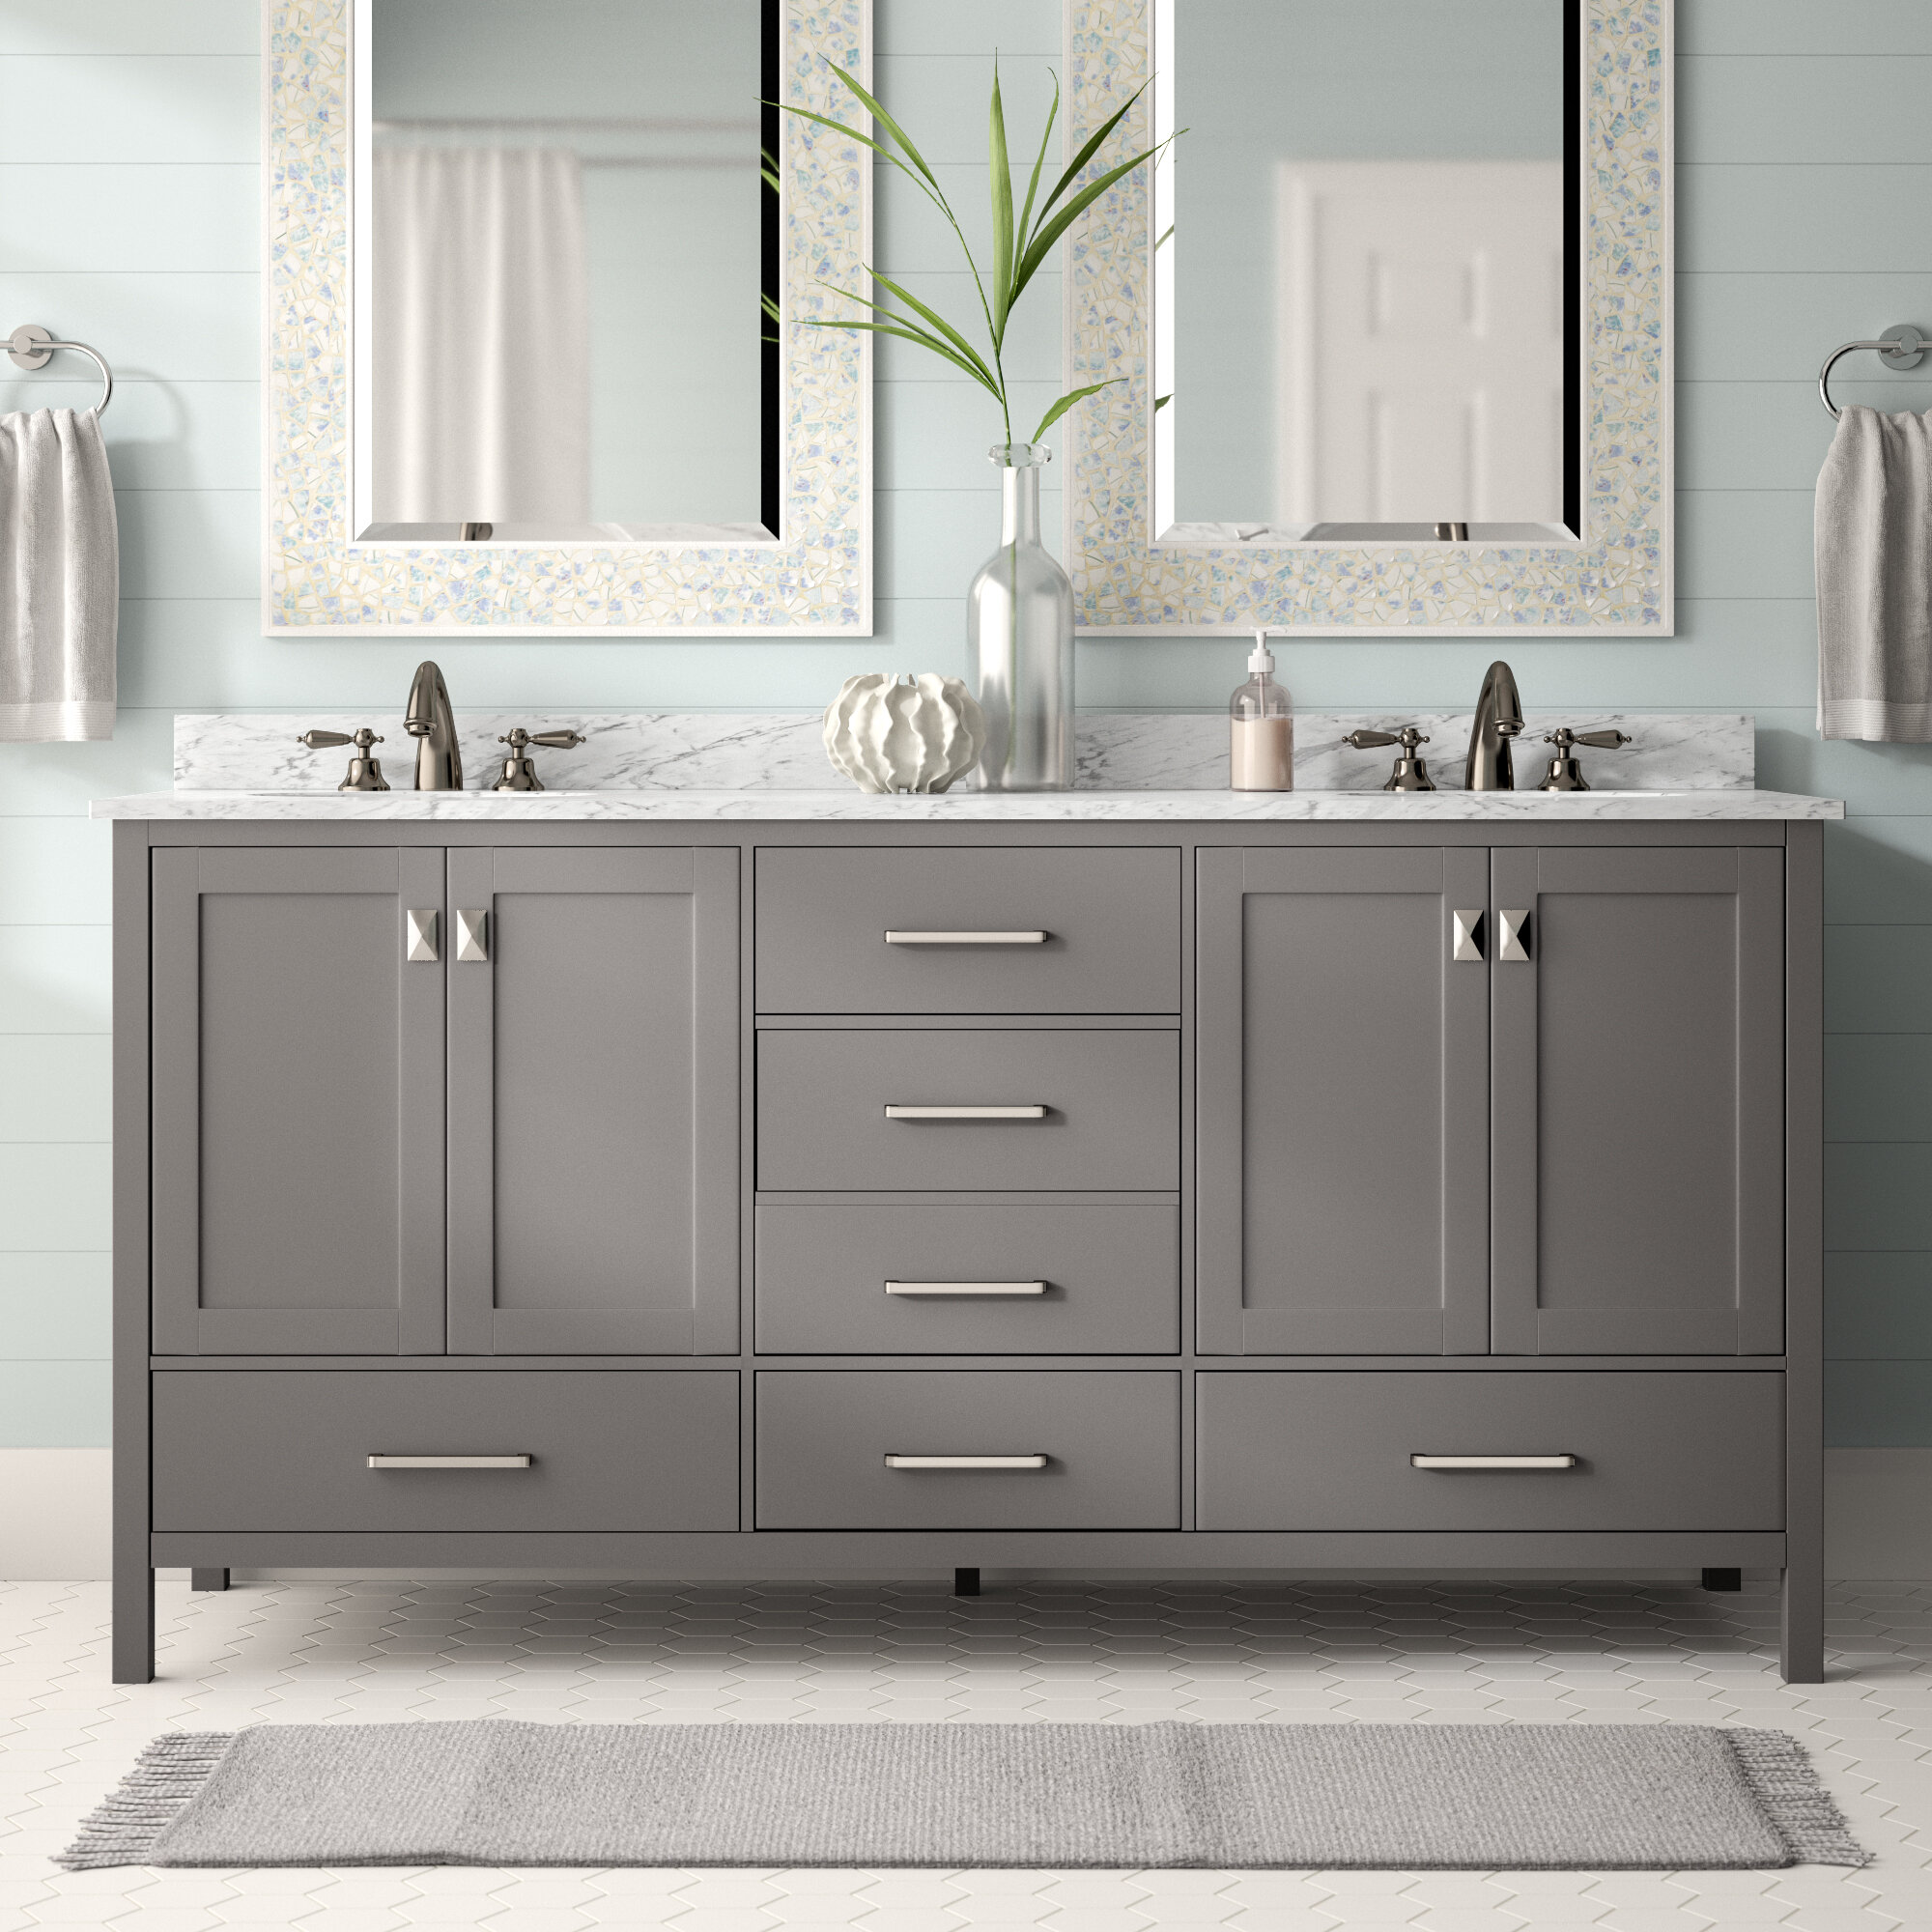 What to Consider In Choosing Bathroom Vanity Tops